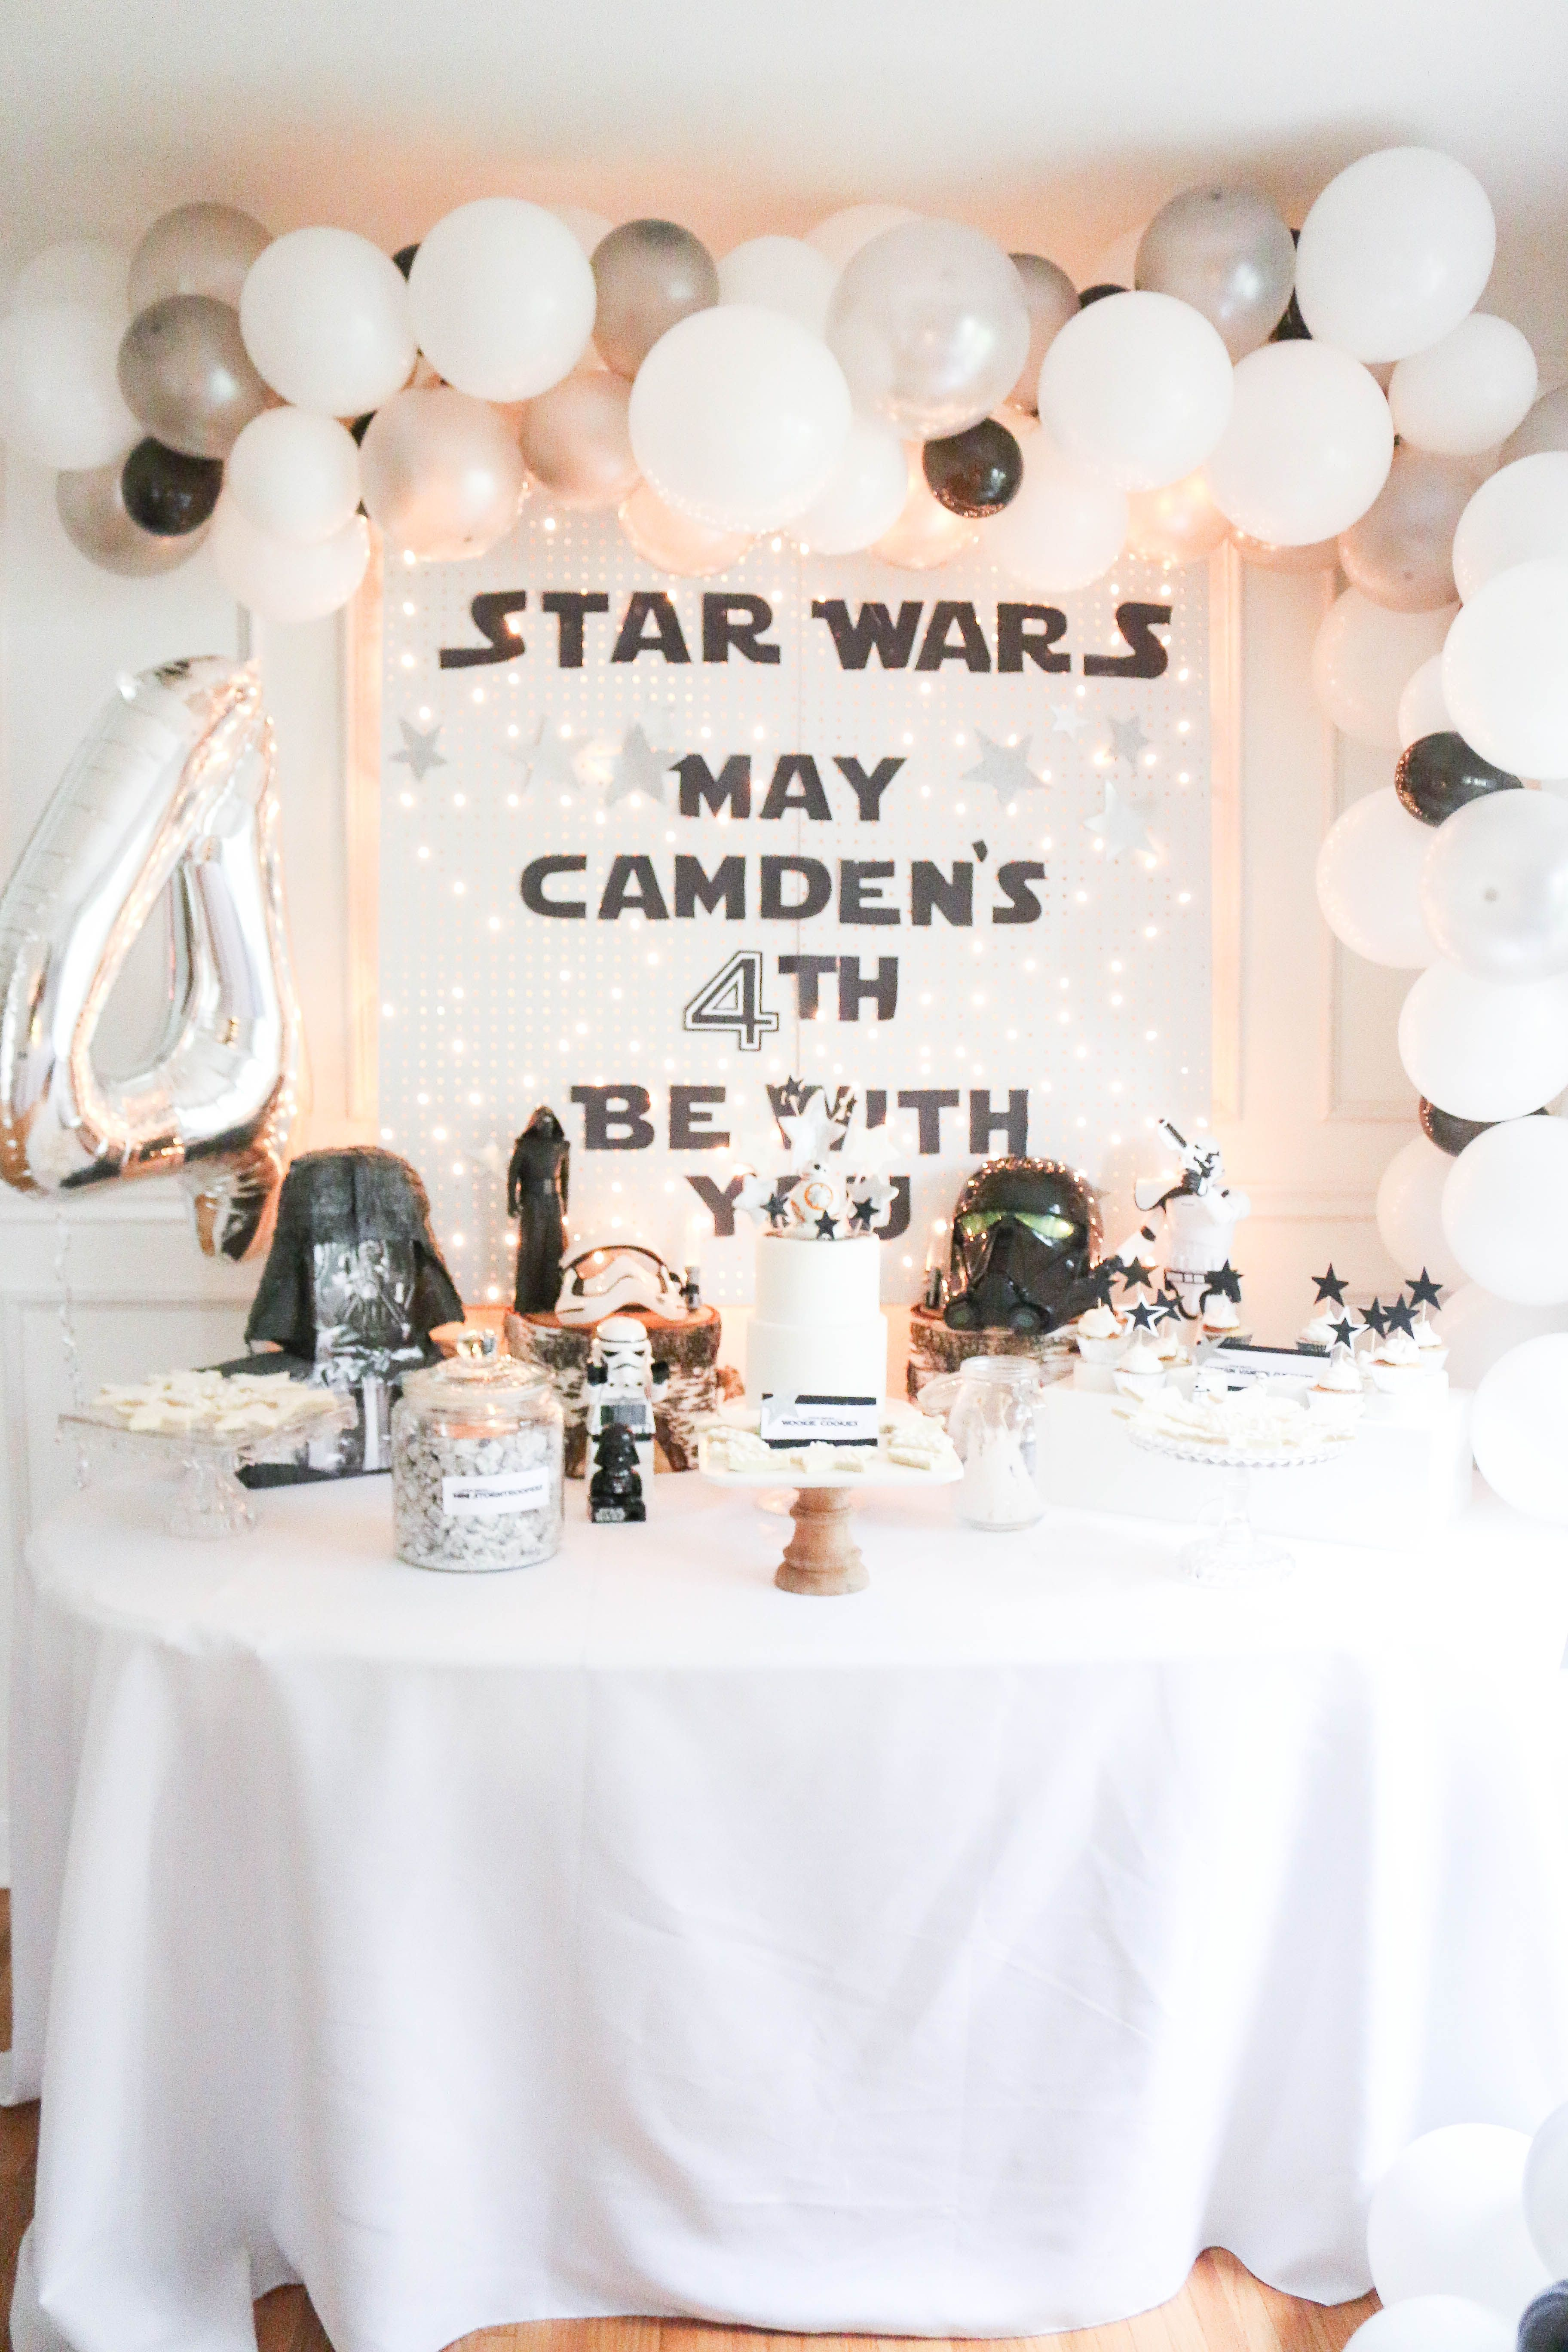 Camden A Darling Daydream tanya ng star wars lego birthday party